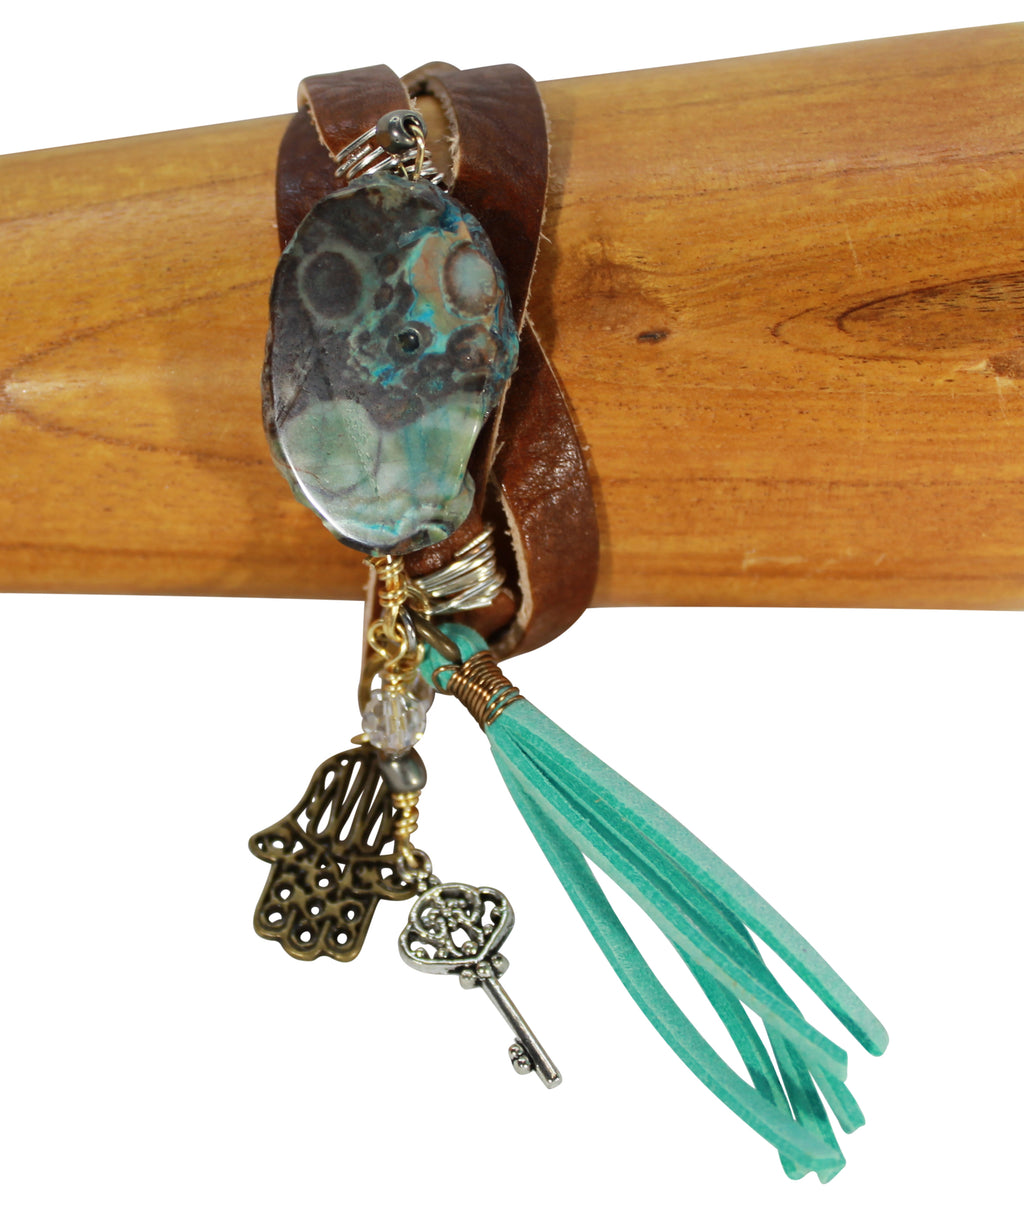 Vegetable tanned leather bracelet, turquoise stone, tassel on charm bracelet, leather jewelry cuff